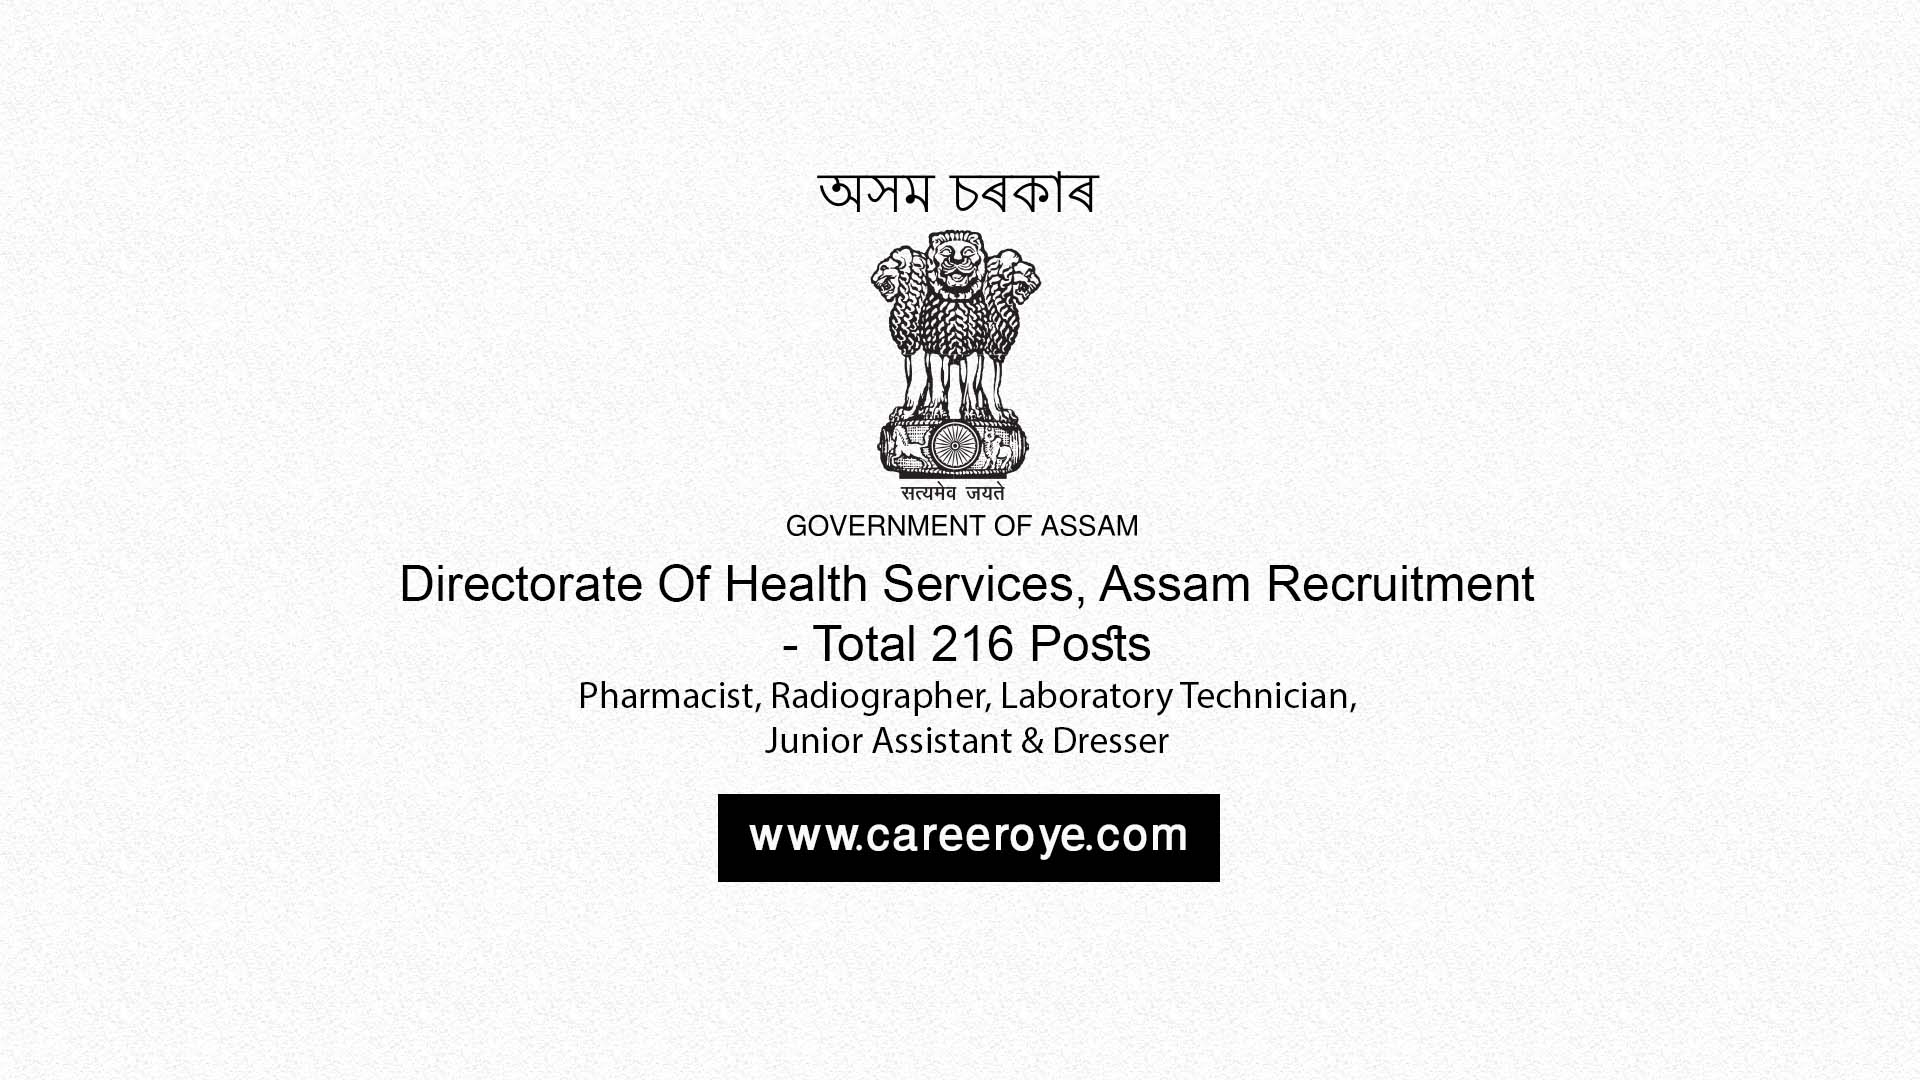 Dhs Personal assistant Job Description - Directorate Of Health Services assam Recruitment 2017 216 Posts